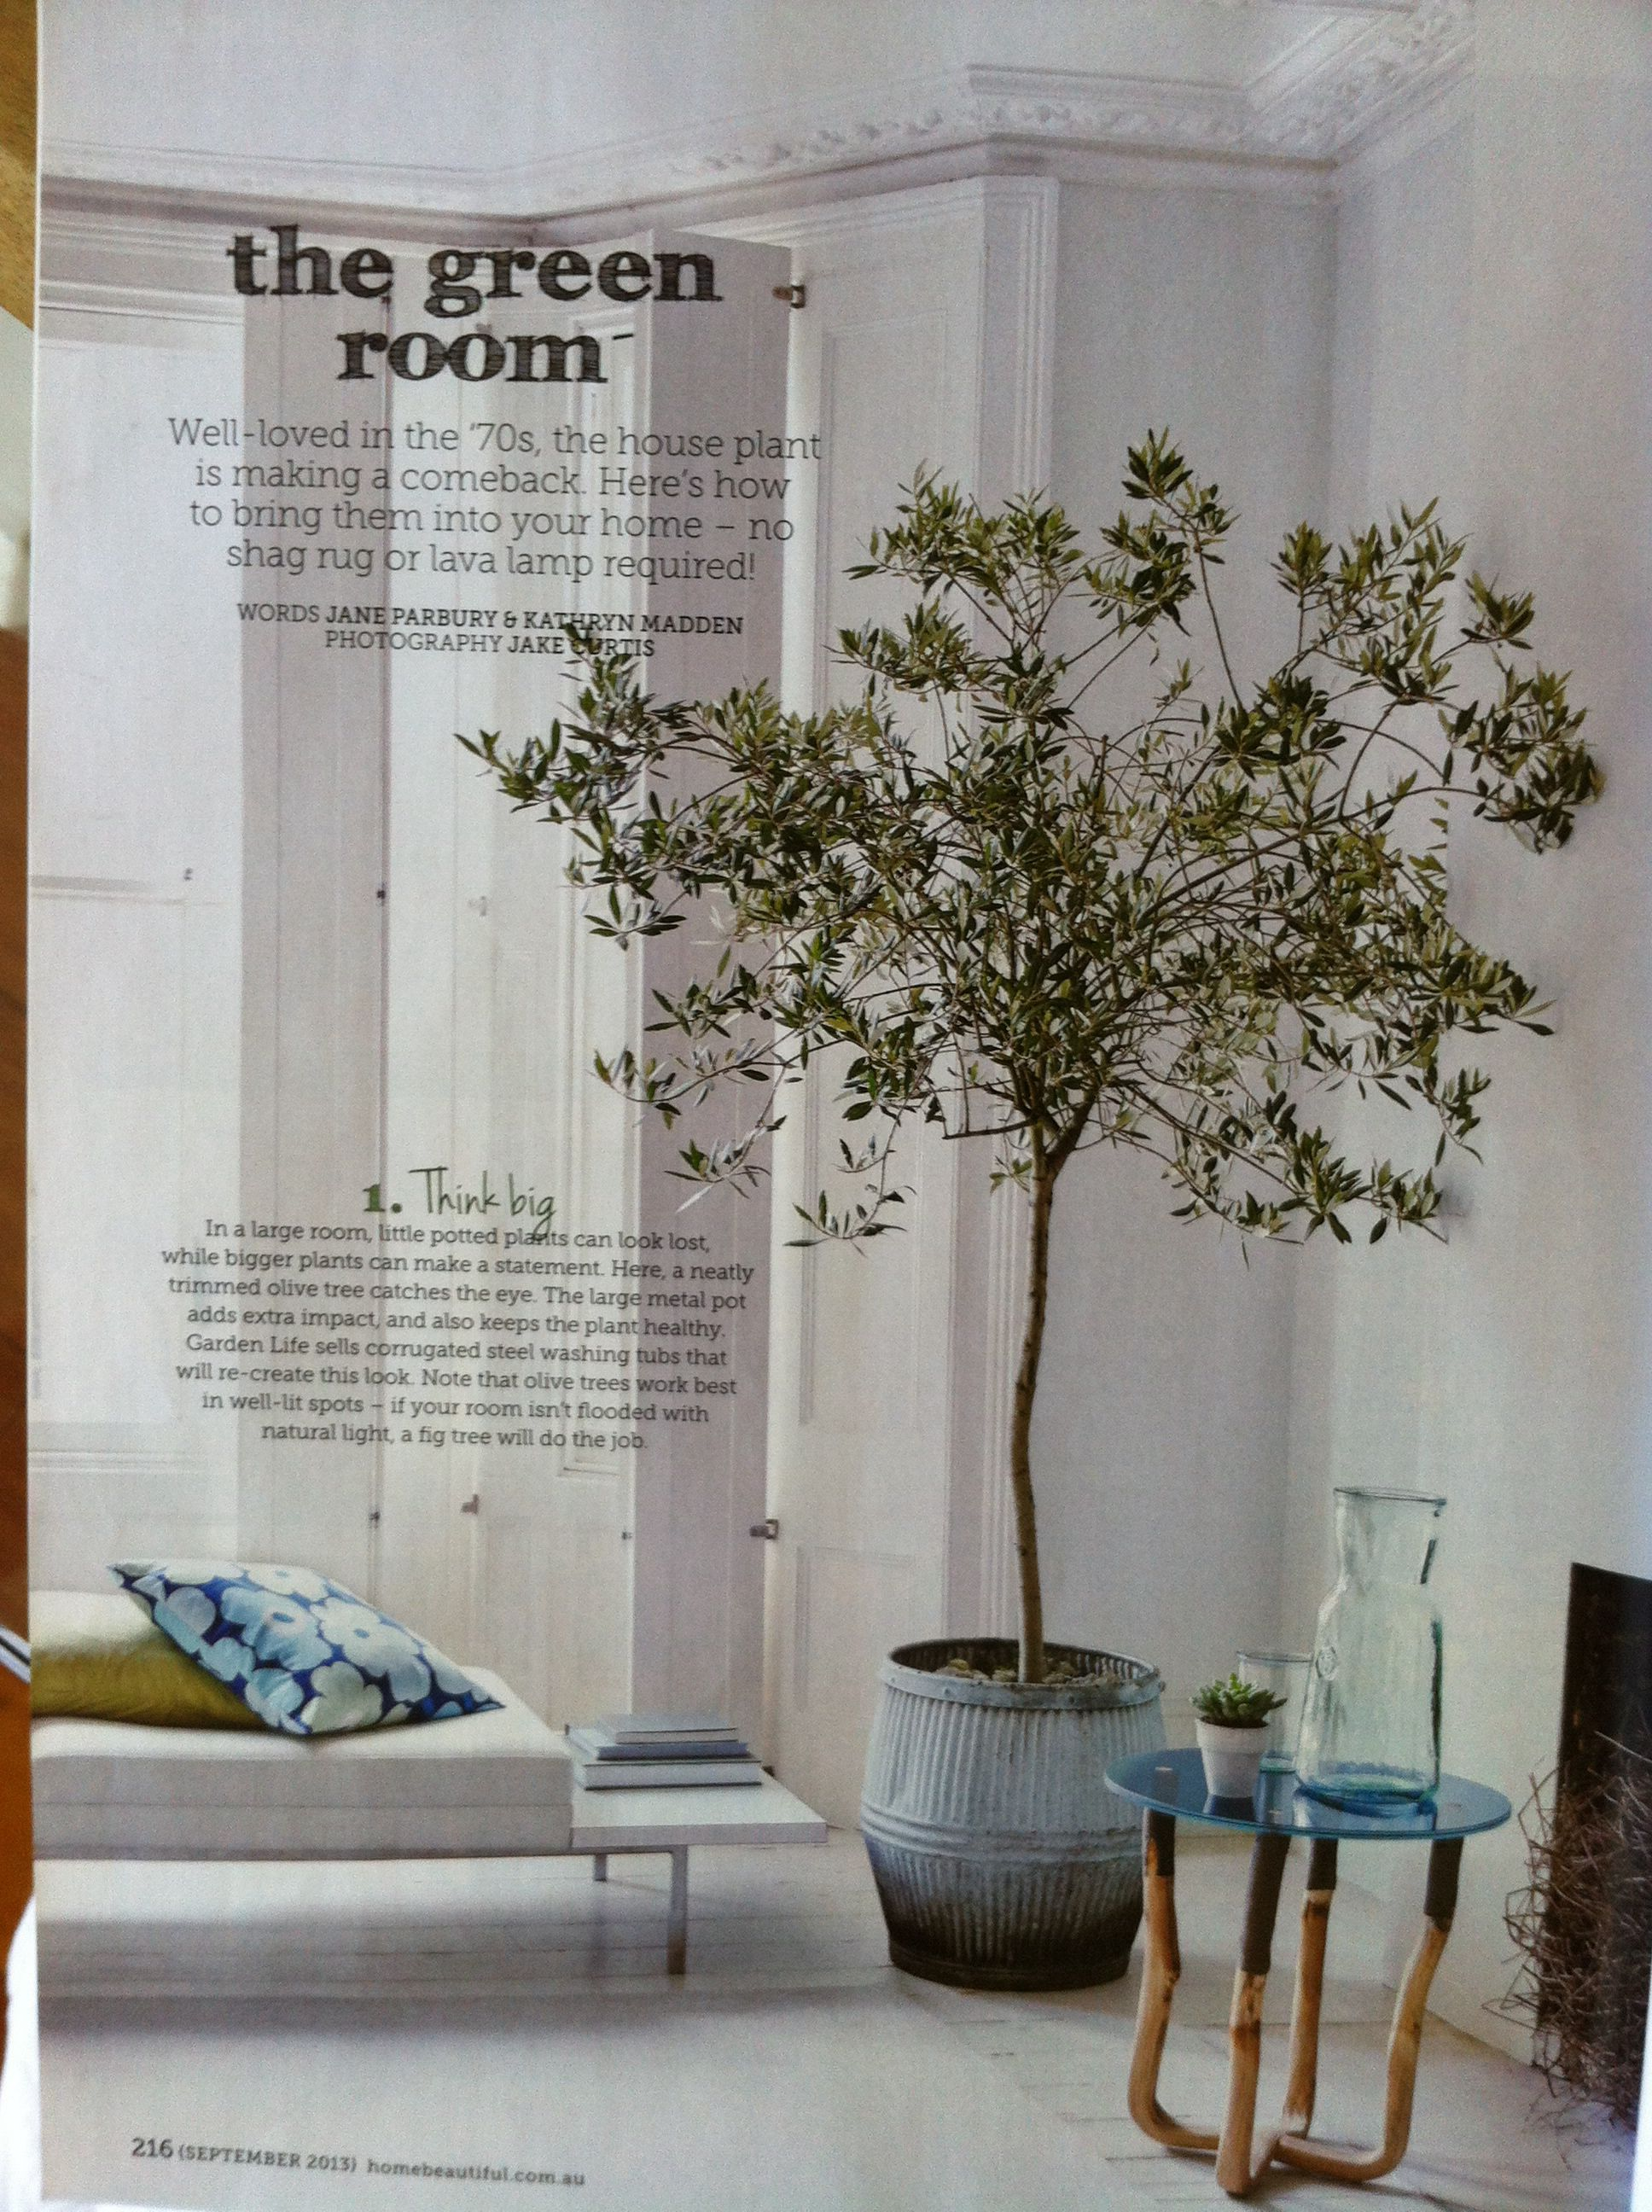 Olive Tree Indoors. HB Sept 2013. Growing Olive Trees In